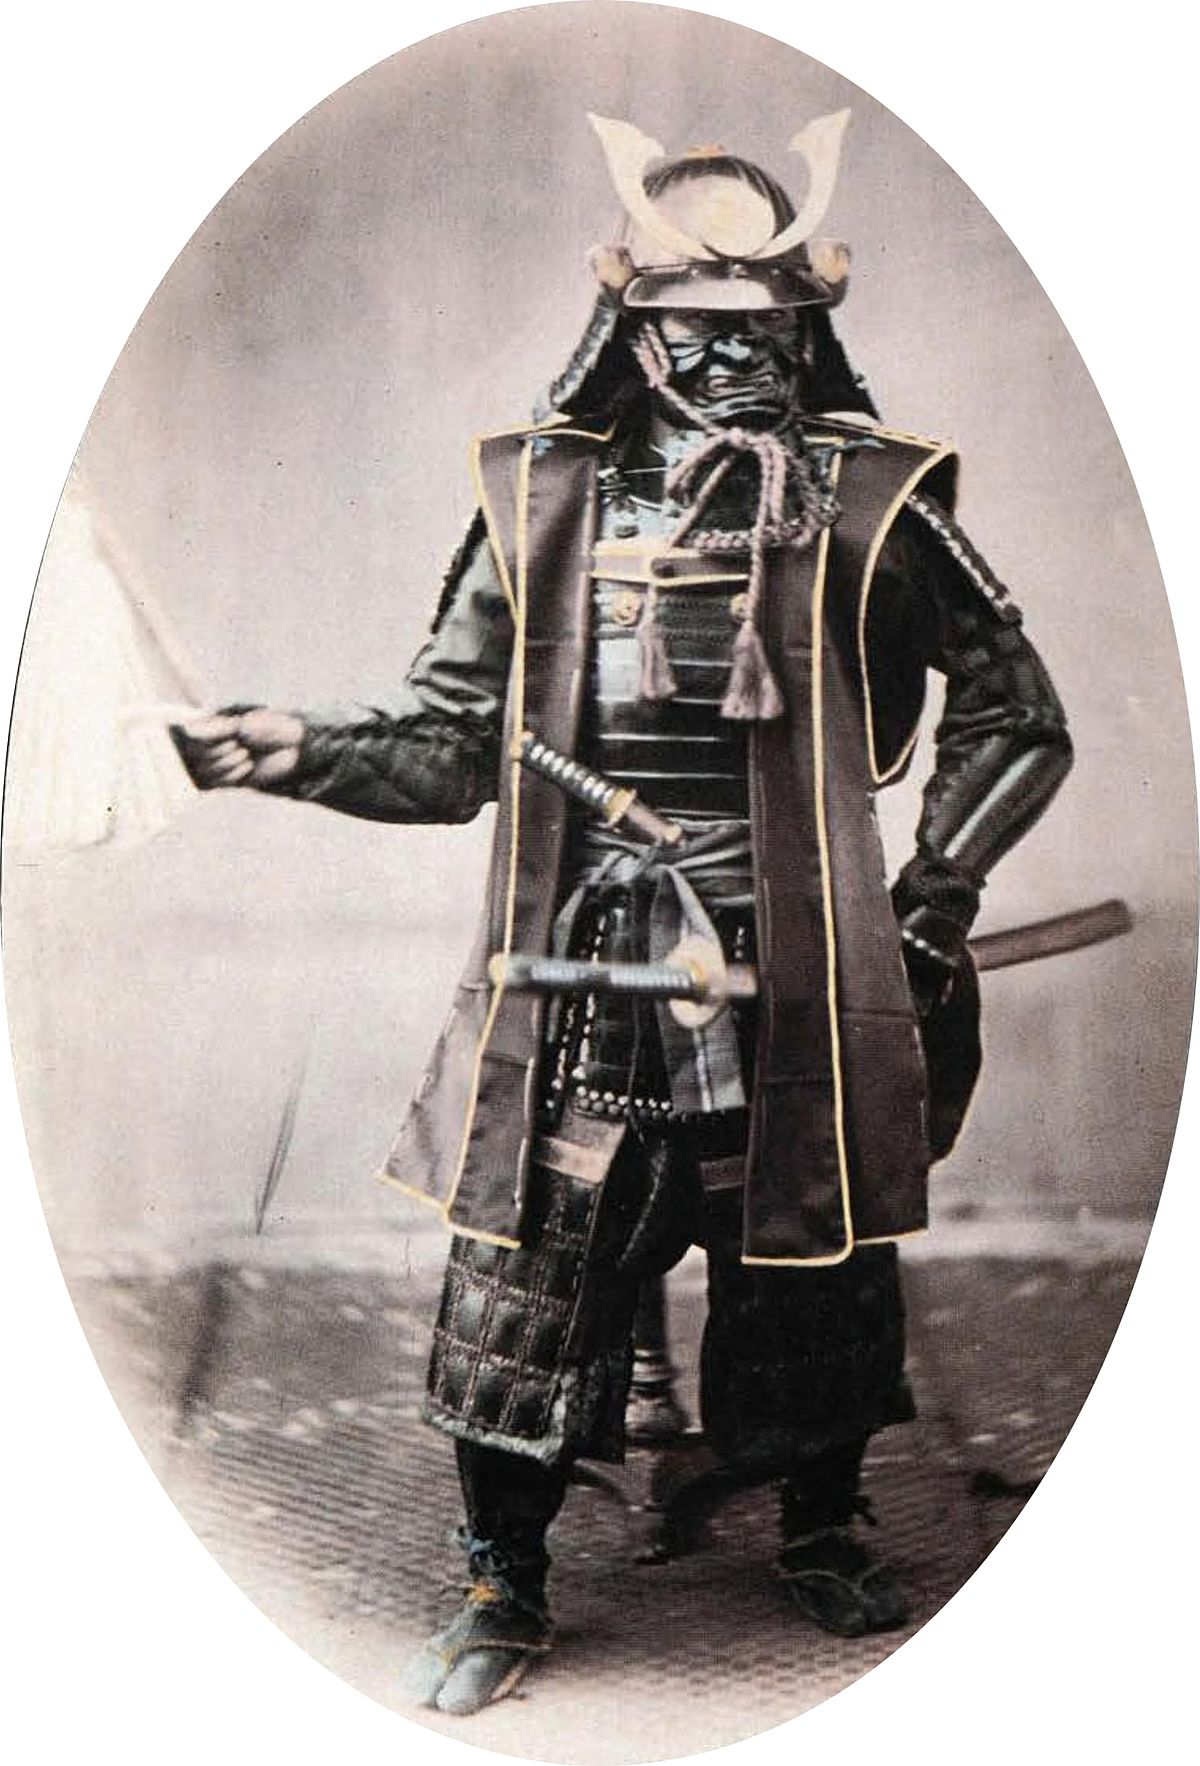 https://upload.wikimedia.org/wikipedia/commons/thumb/0/0e/Samurai.jpg/1200px-Samurai.jpg